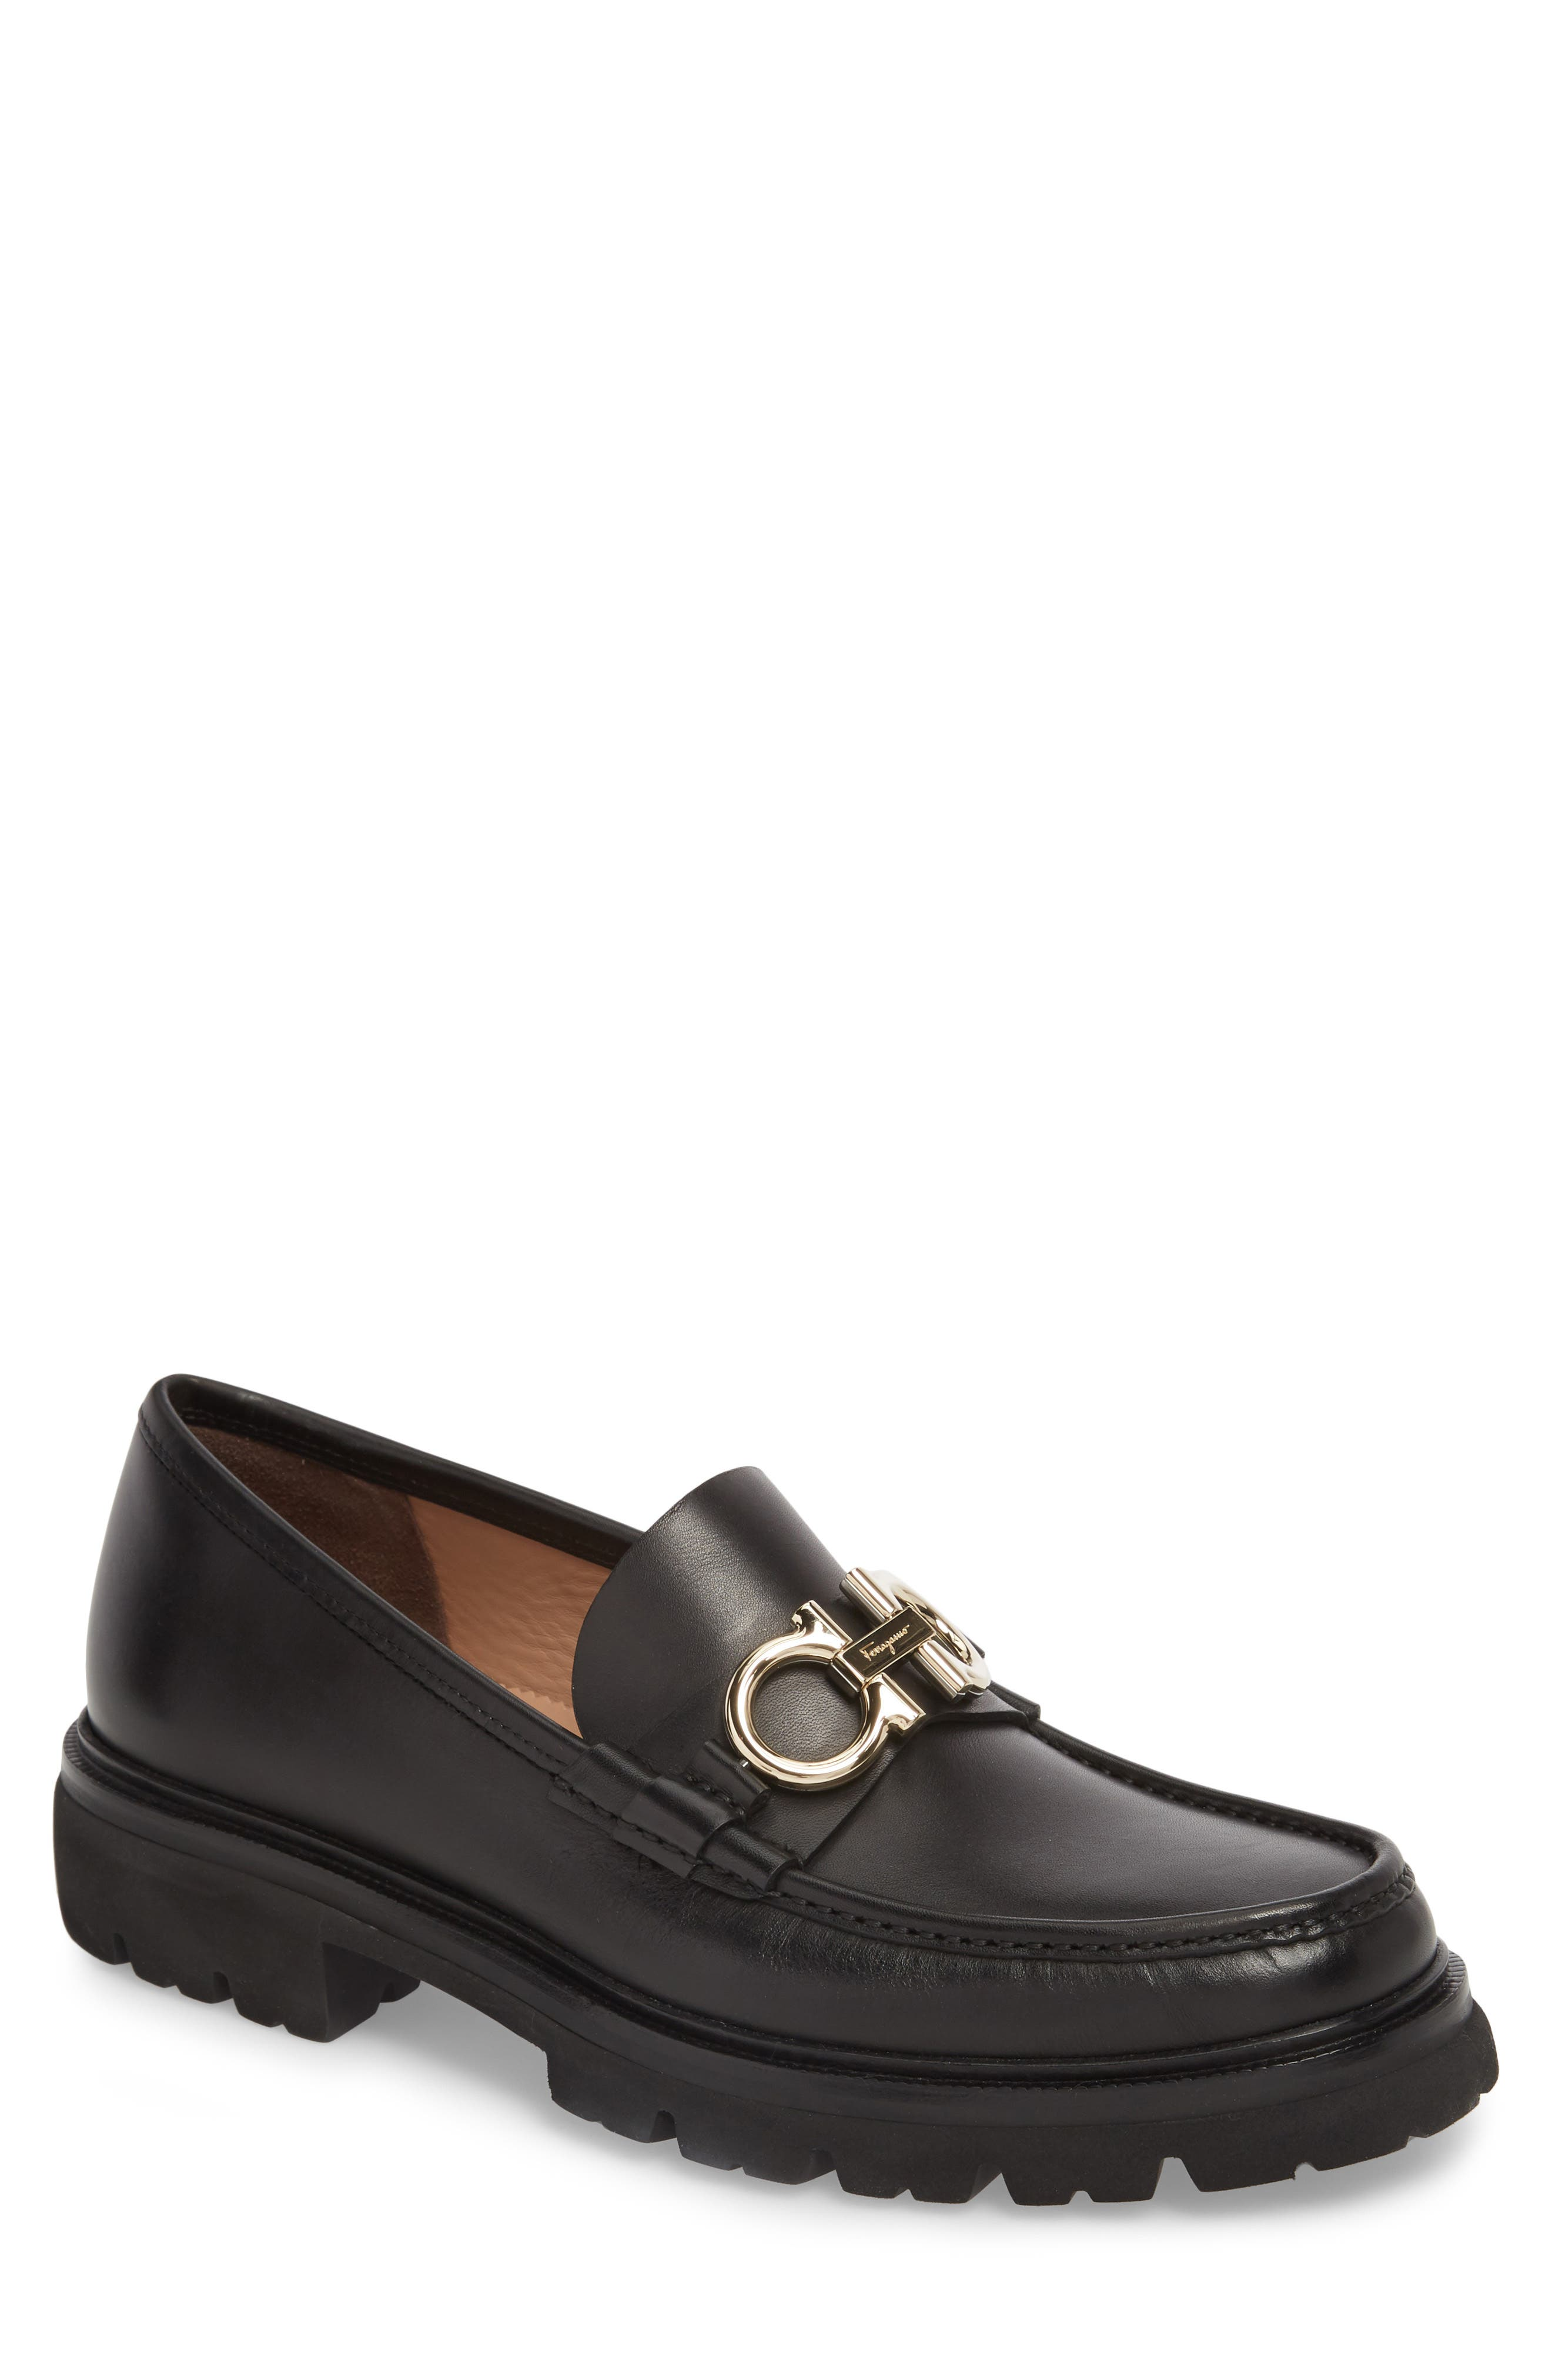 Bleecker Reversible Bit Lugged Loafer,                             Main thumbnail 1, color,                             NERO LEATHER